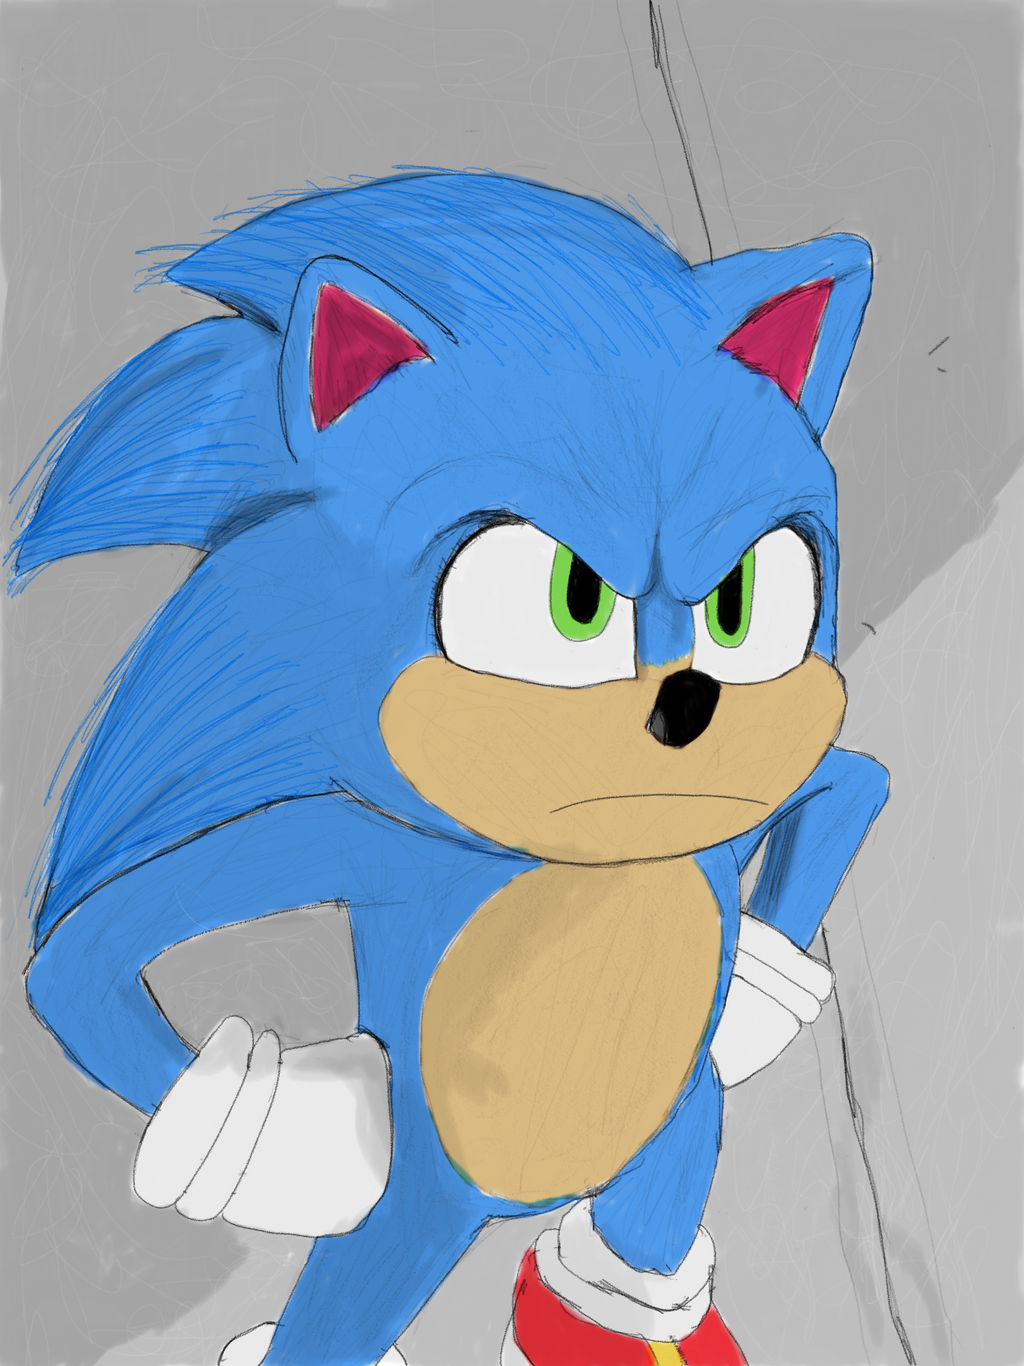 Sonic The Hedgehog 2020 By Homer311 On Deviantart